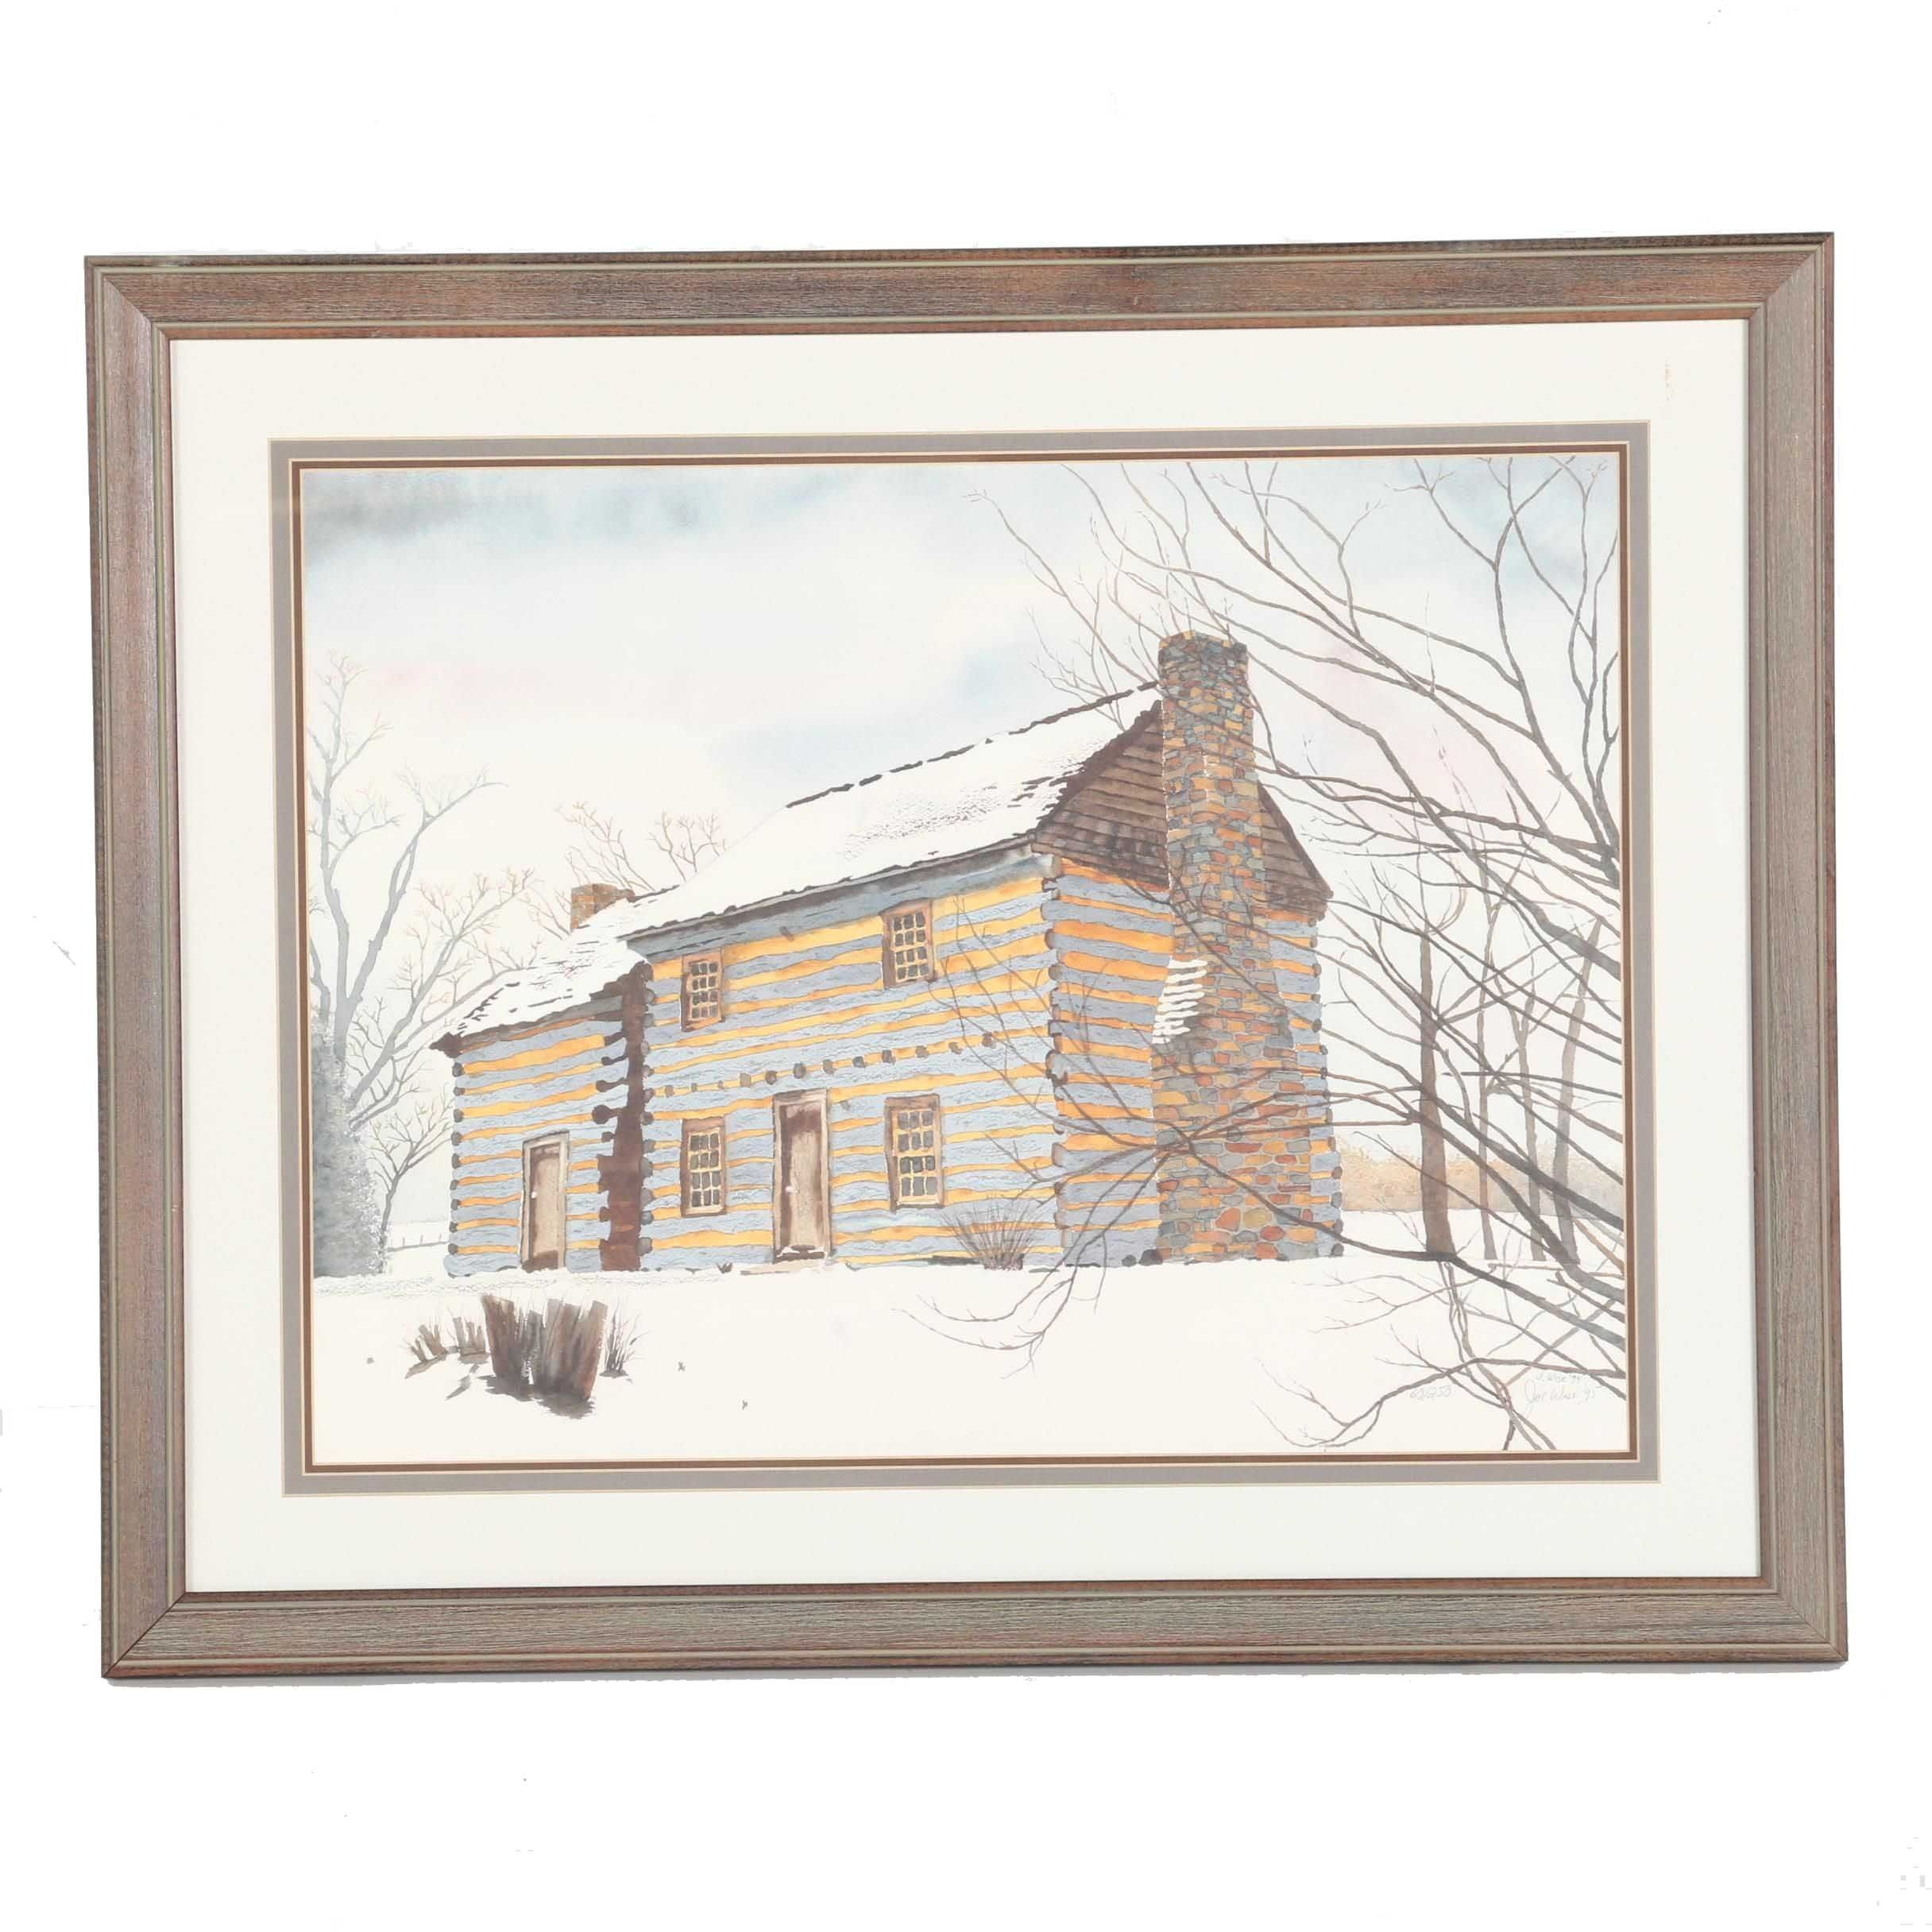 Joe Wise Limited Edition Offset Lithograph of Cabin